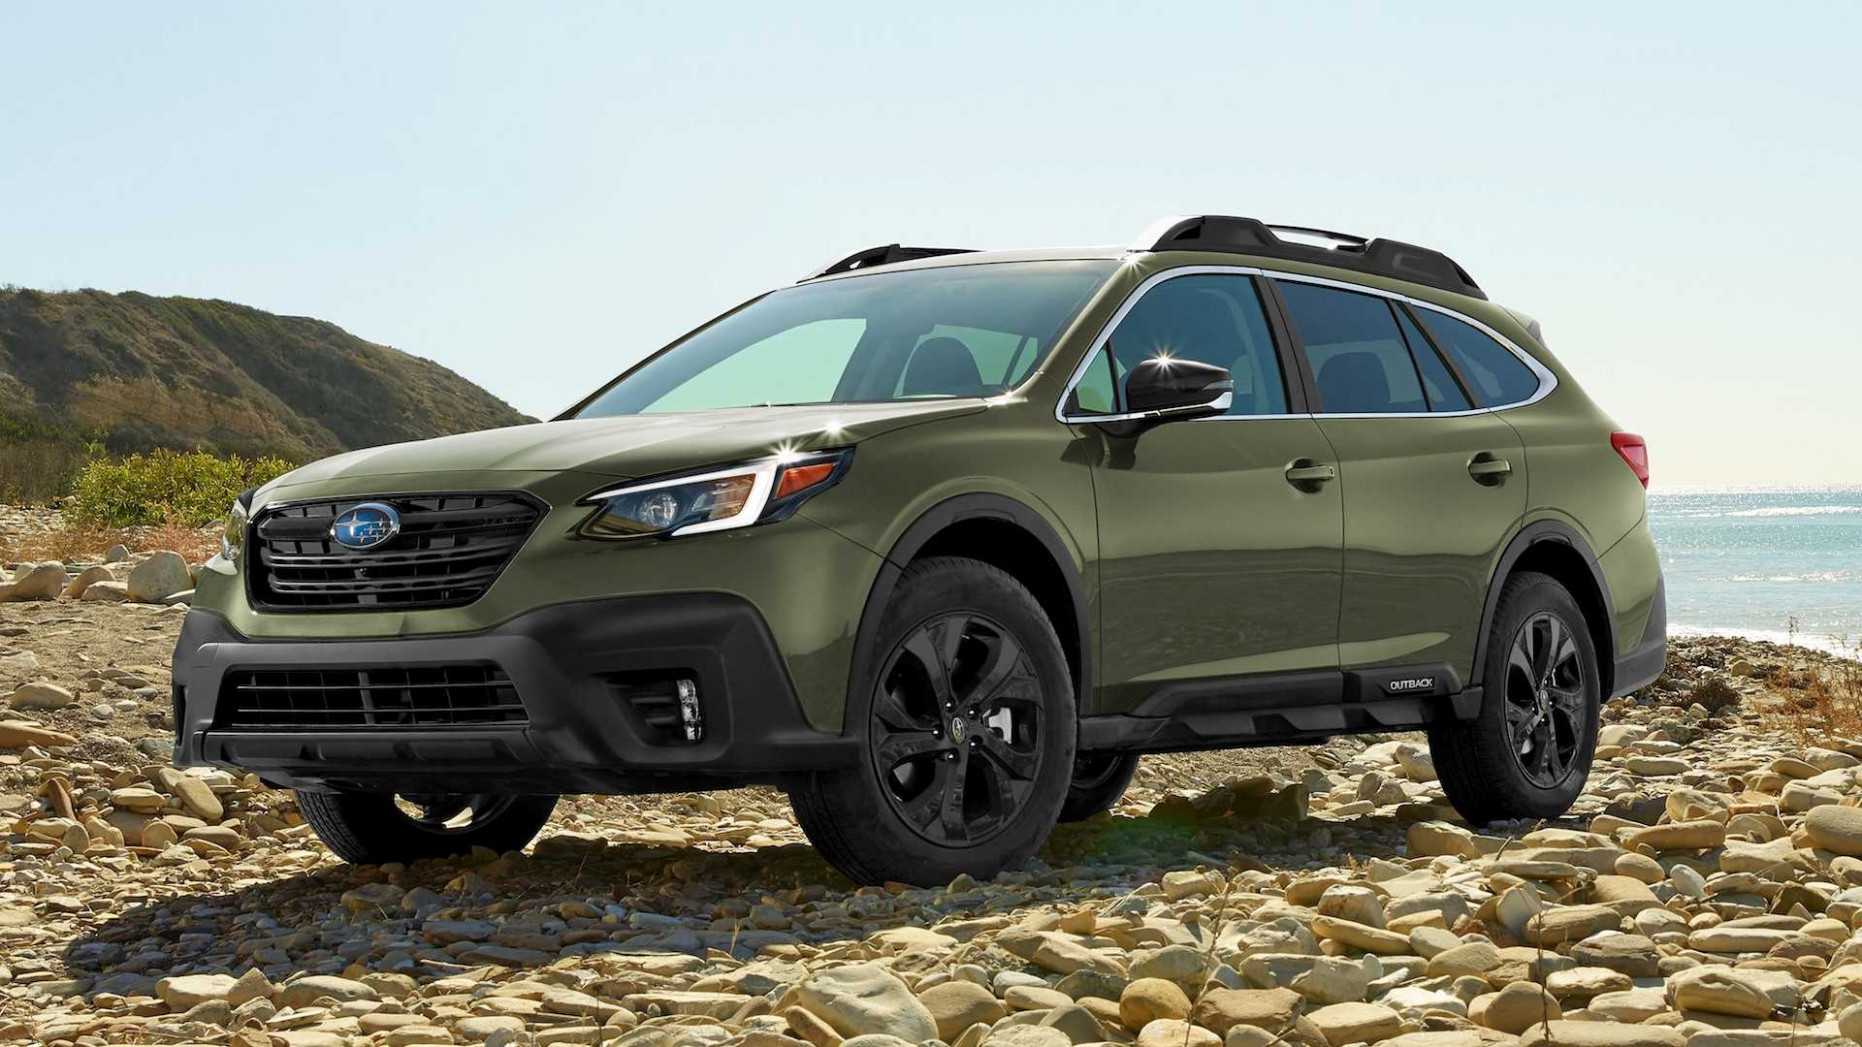 Most Expensive 10 Subaru Outback Costs $10,10